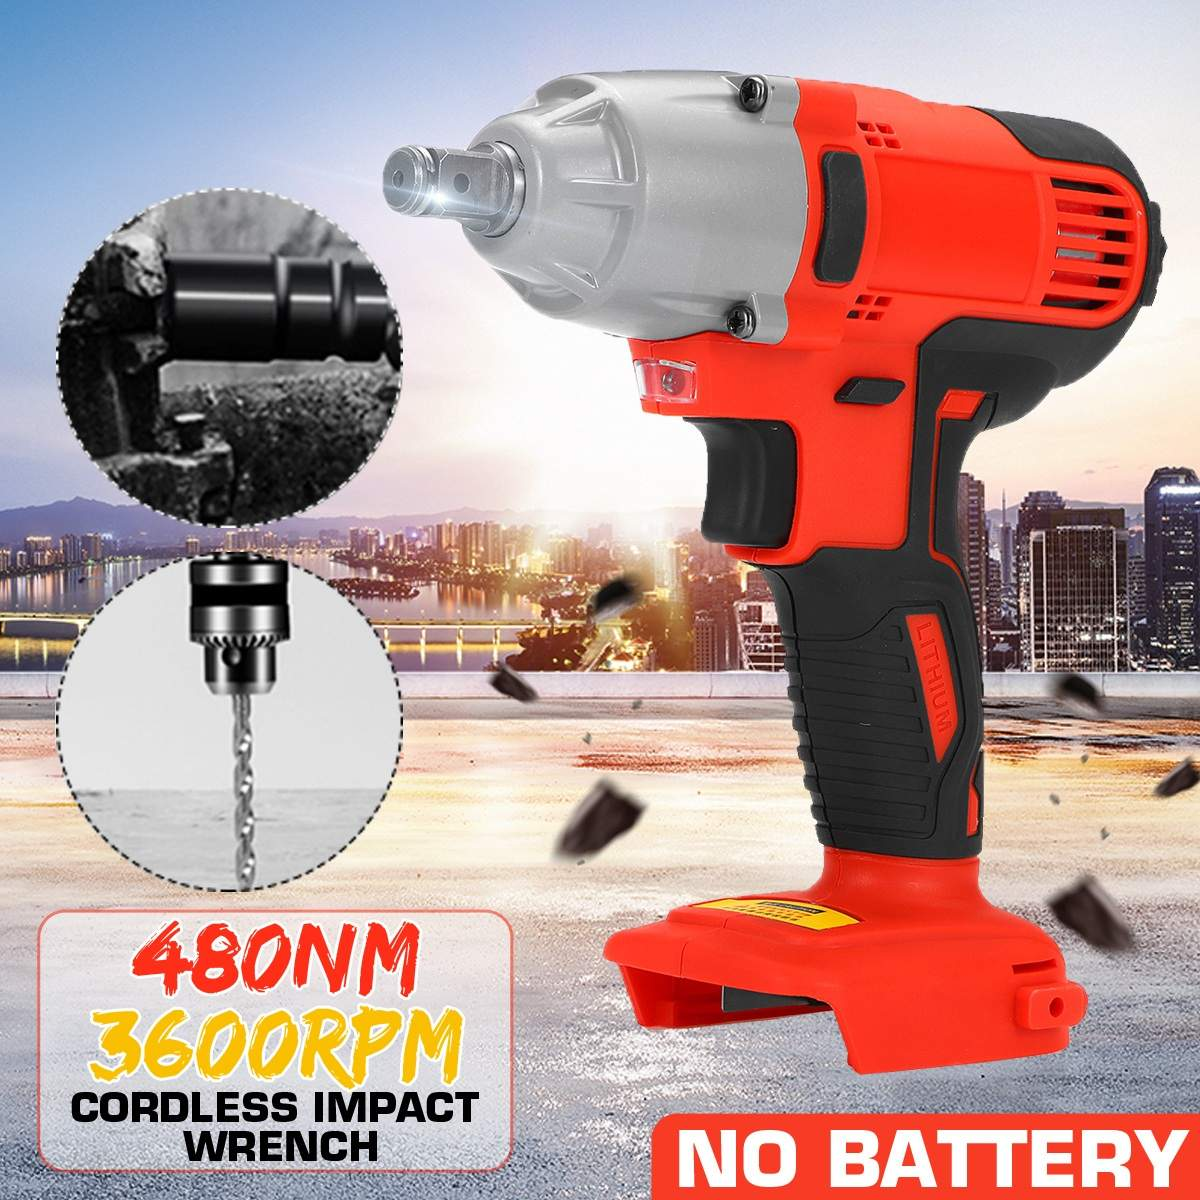 3600rpm Impact Wrench Cordless Electric Wrench Power Tool <font><b>480Nm</b></font> Torque Rechargeable With <font><b>LED</b></font> Lights For Home Car Repaire image